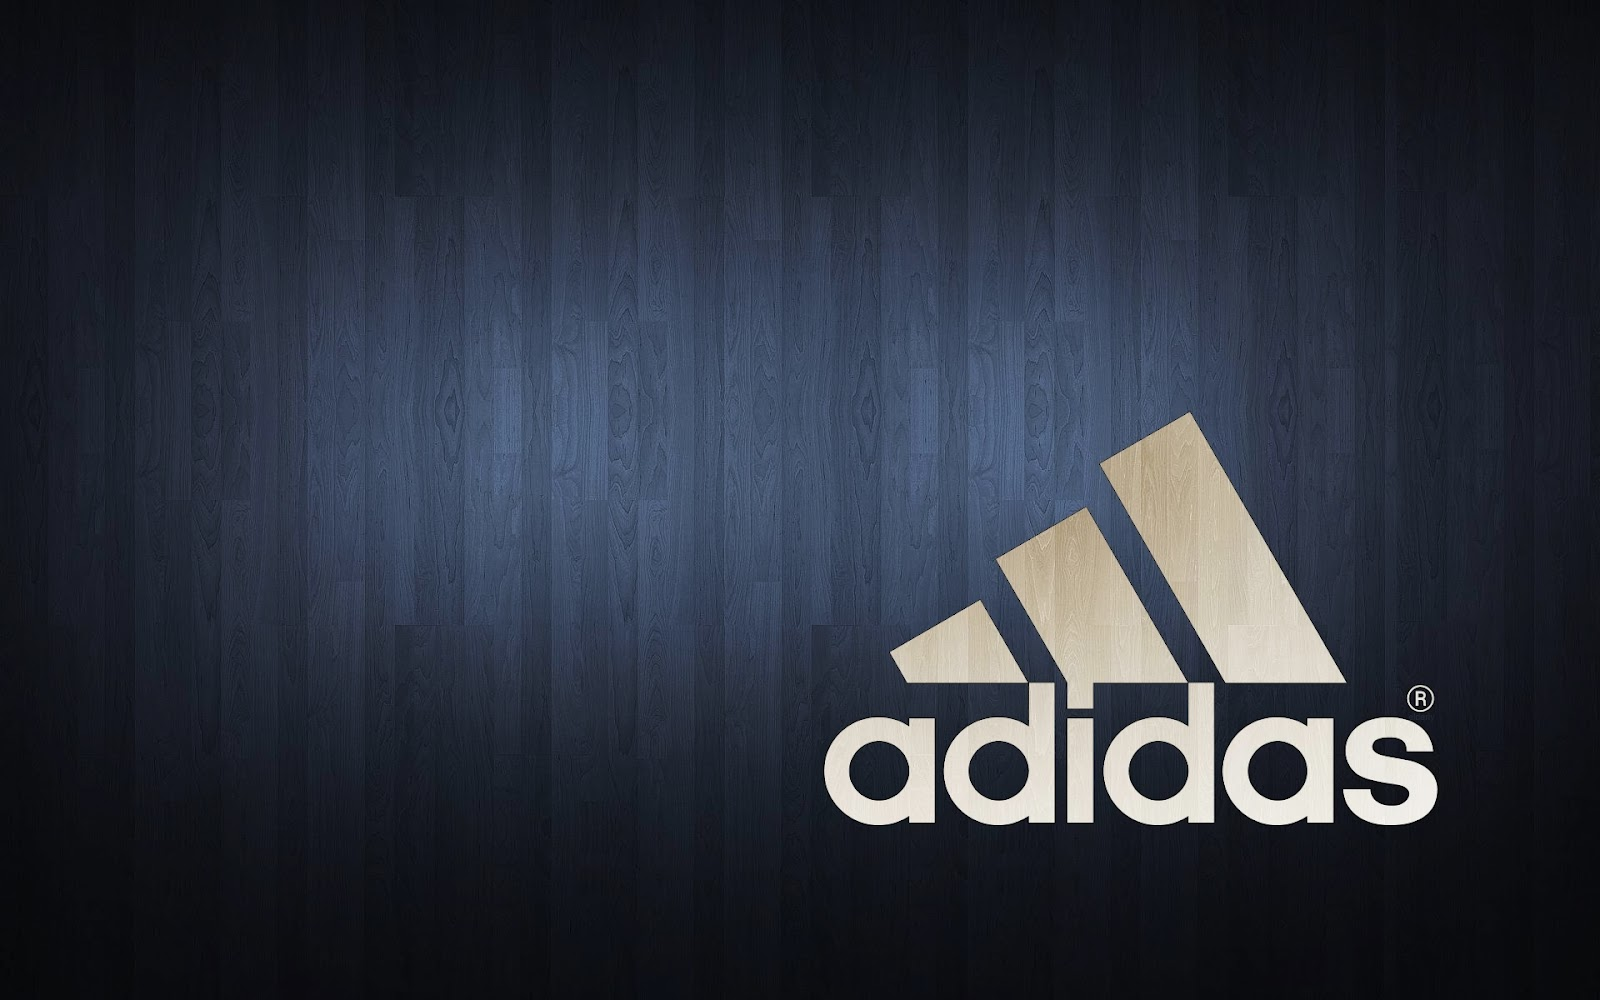 Logo Adidas Wallpaper Picture 9503 Wallpaper Wallpaper Screen 1600x1000